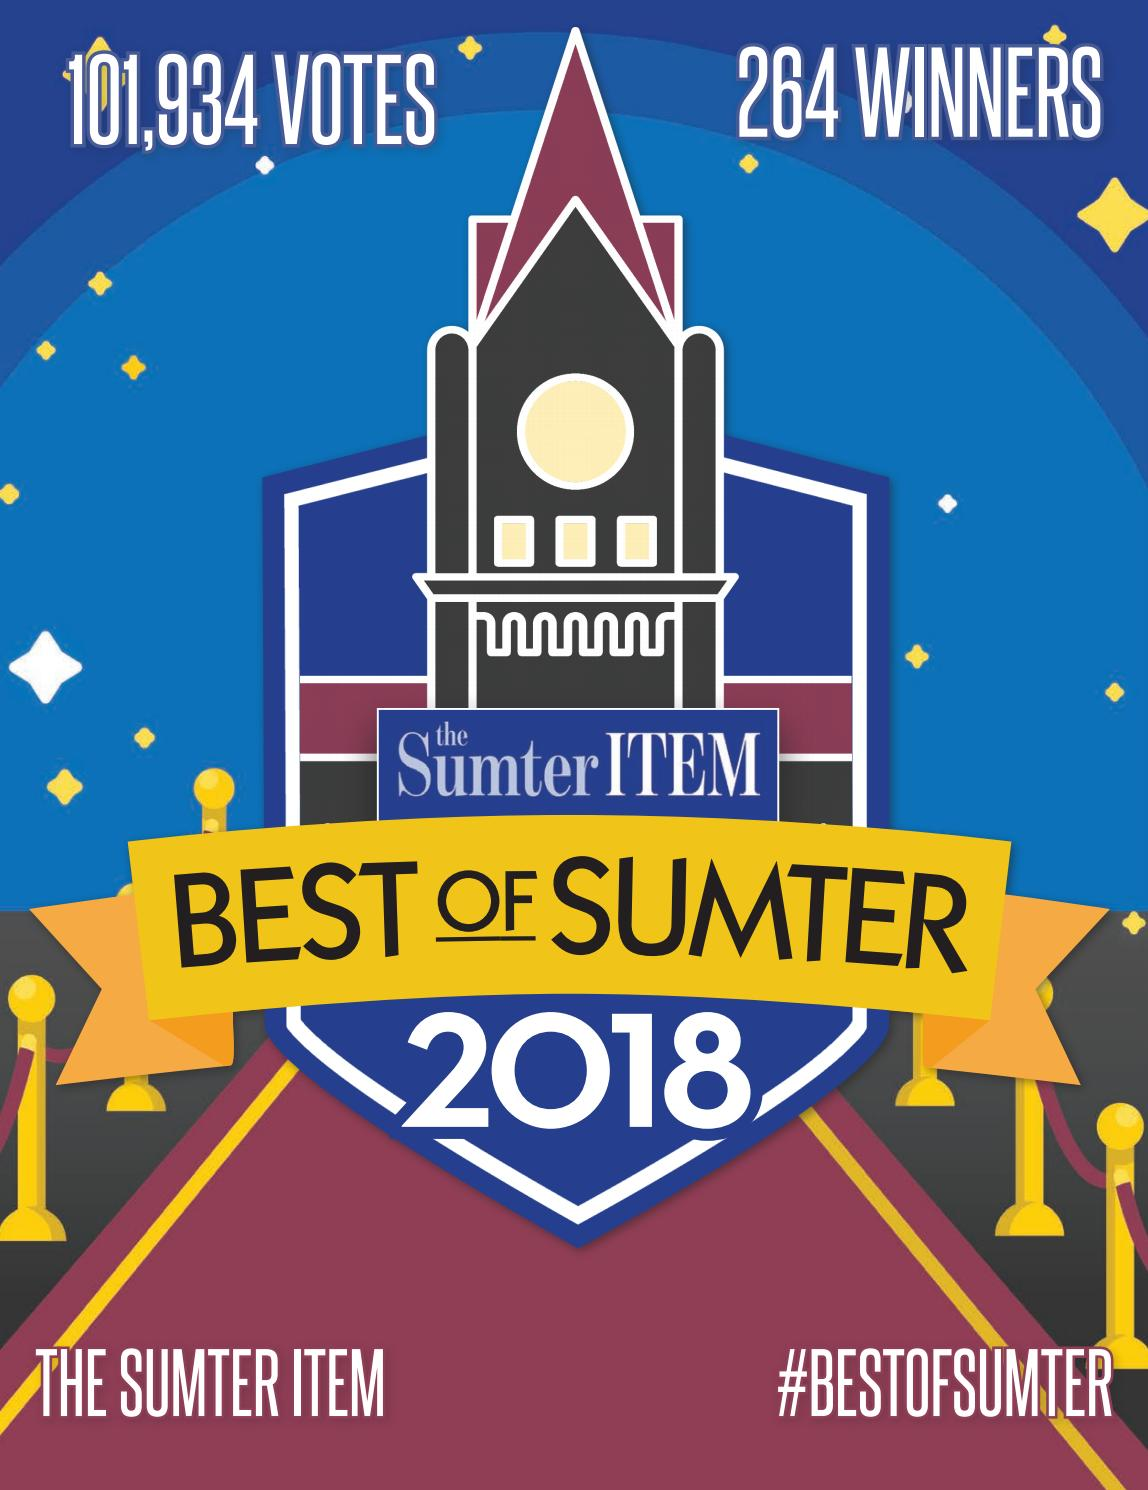 Best of Sumter 2018 by The Sumter Item - issuu